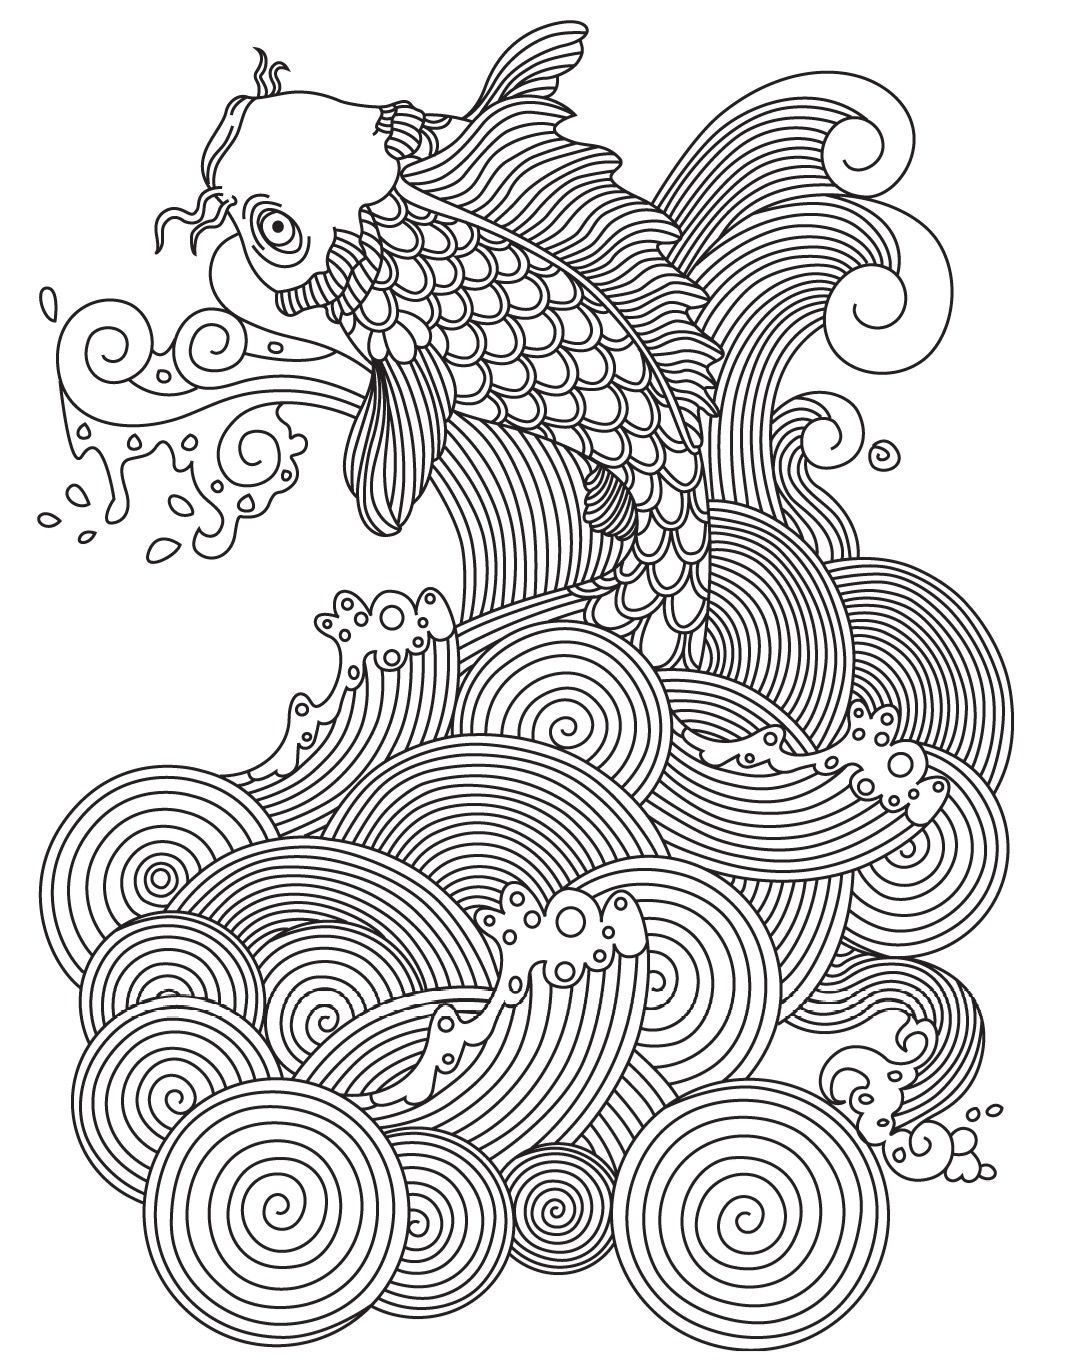 Carp Colorish Coloring Book For Adults Mandala Relax By Goodsofttech Fish Coloring Page Lion Coloring Pages Coloring Pages